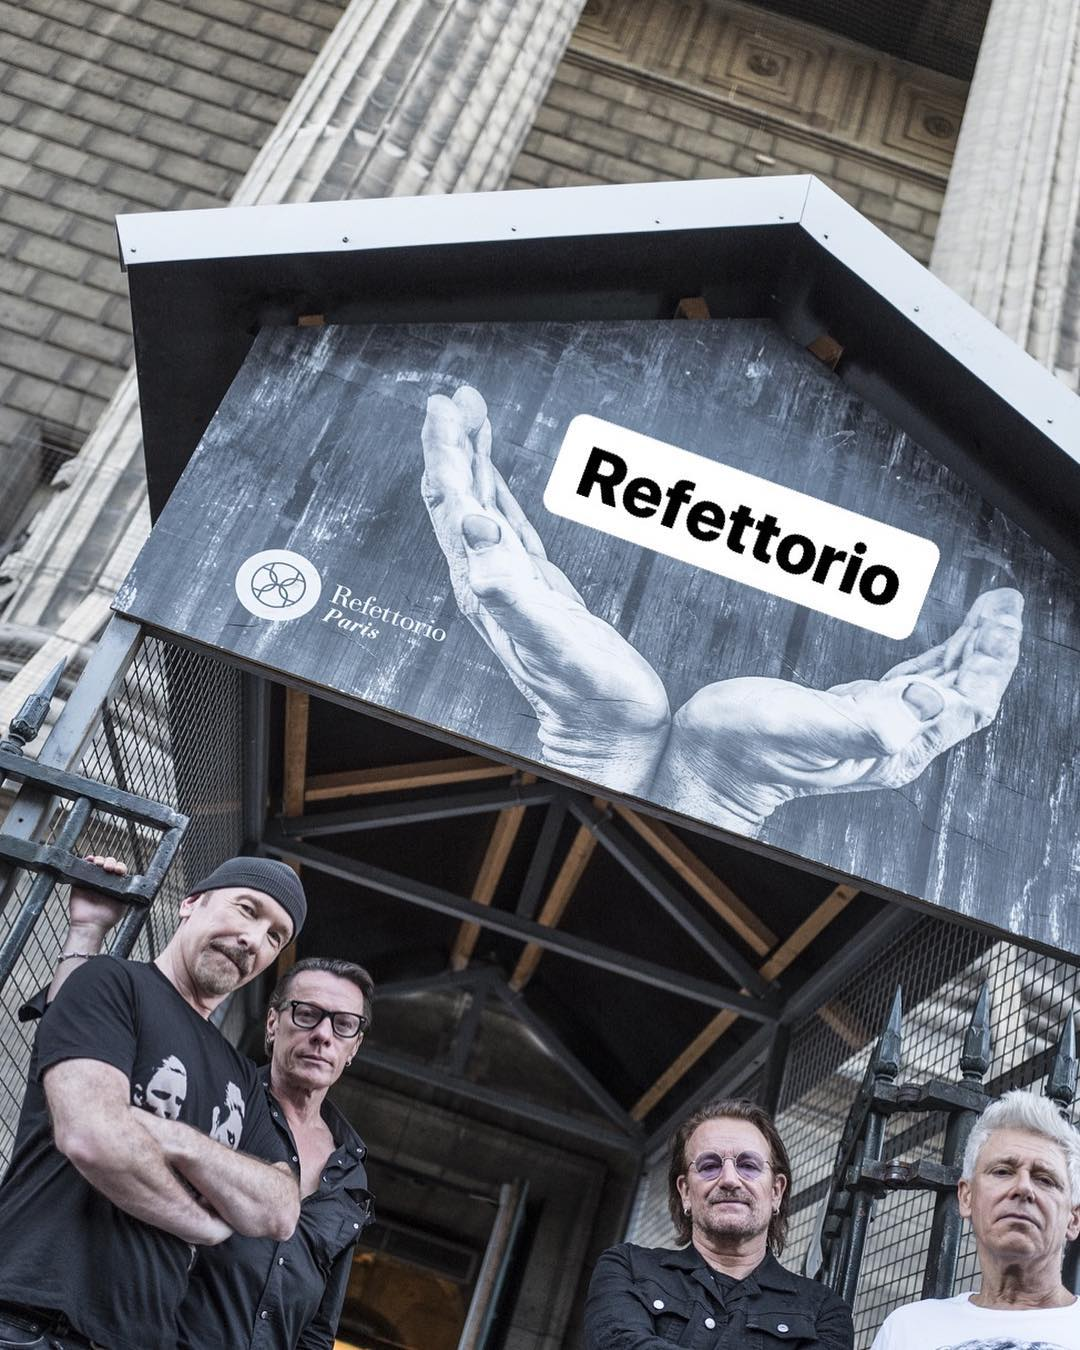 U2 at Refettorio Paris. Image courtesy of Refettorio Paris's Instagram